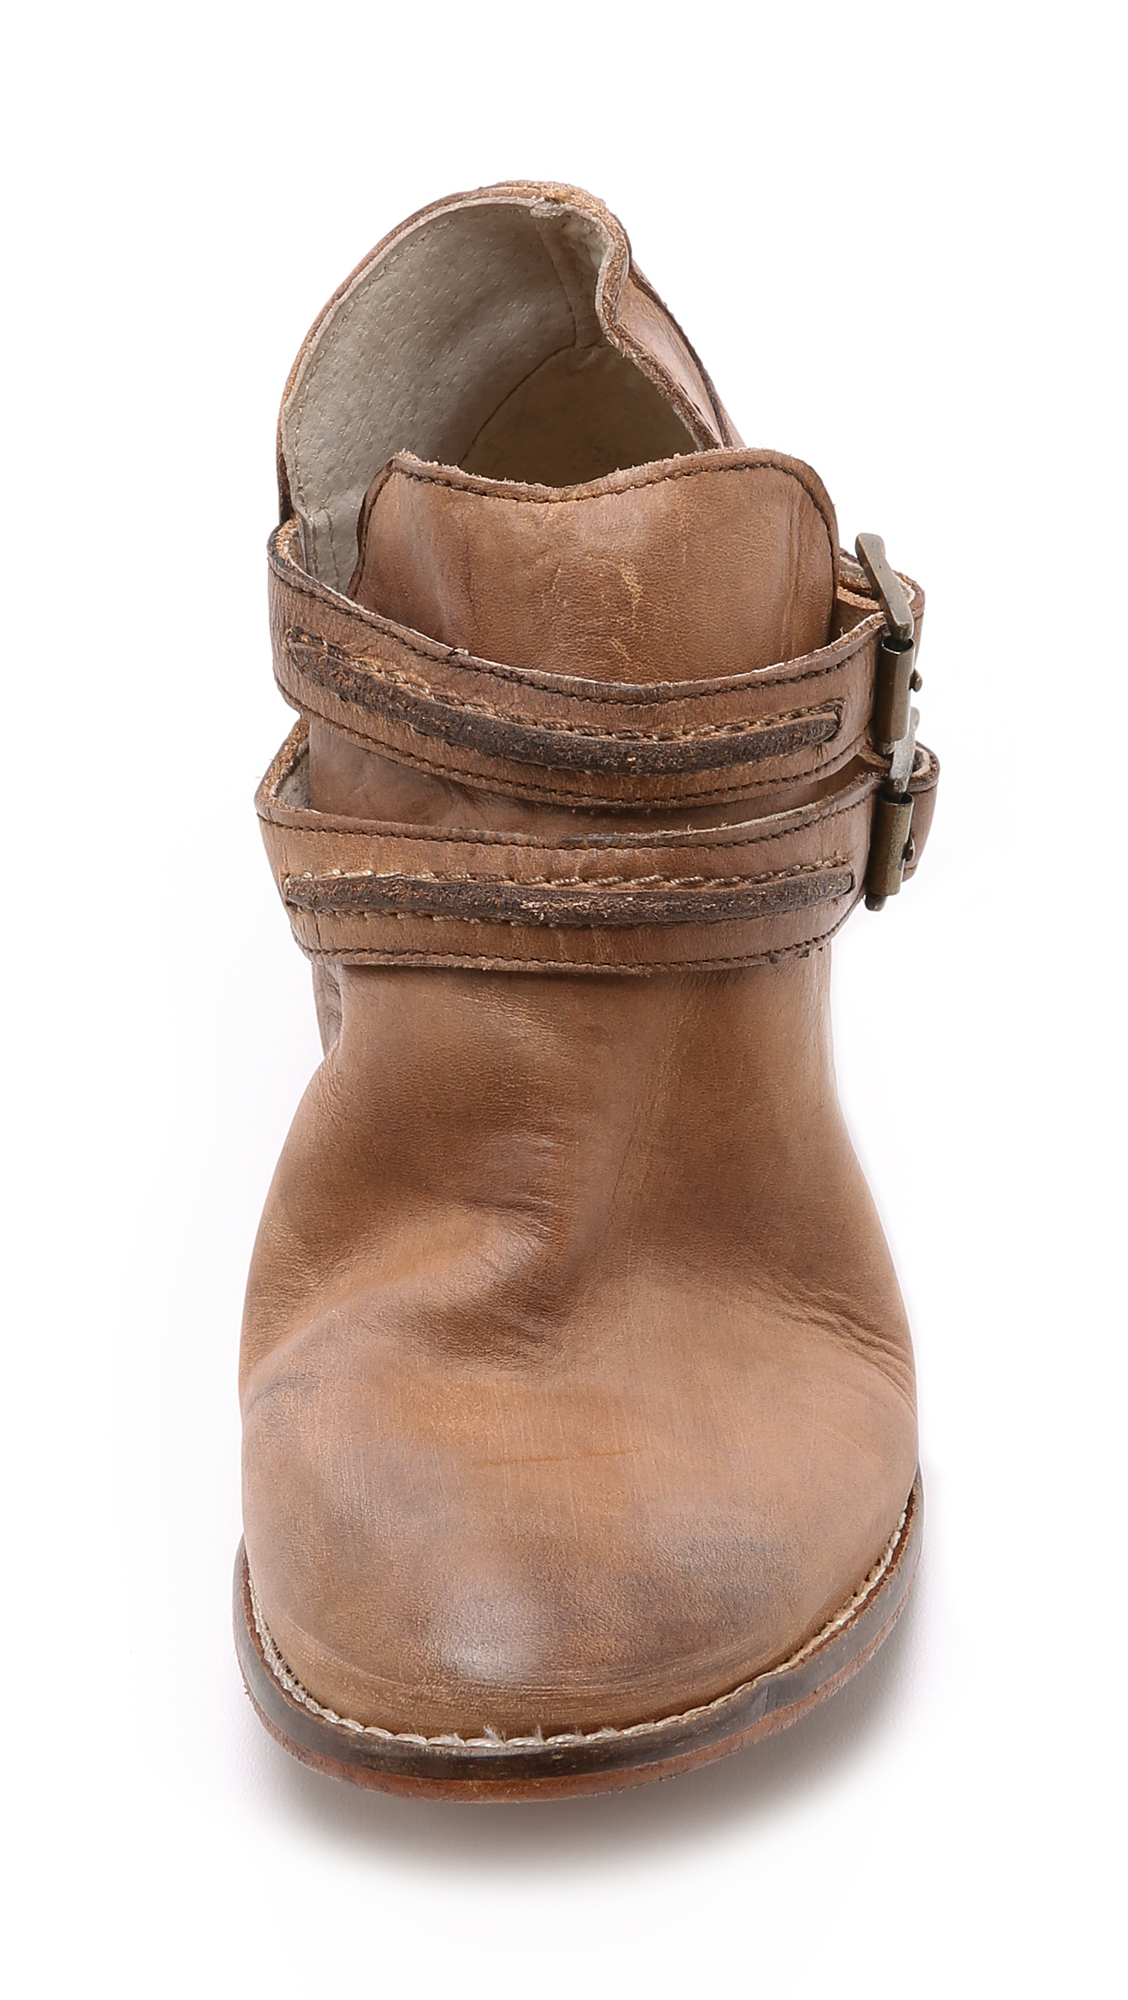 e13a44c4b407 Free People Braeburn Ankle Boots